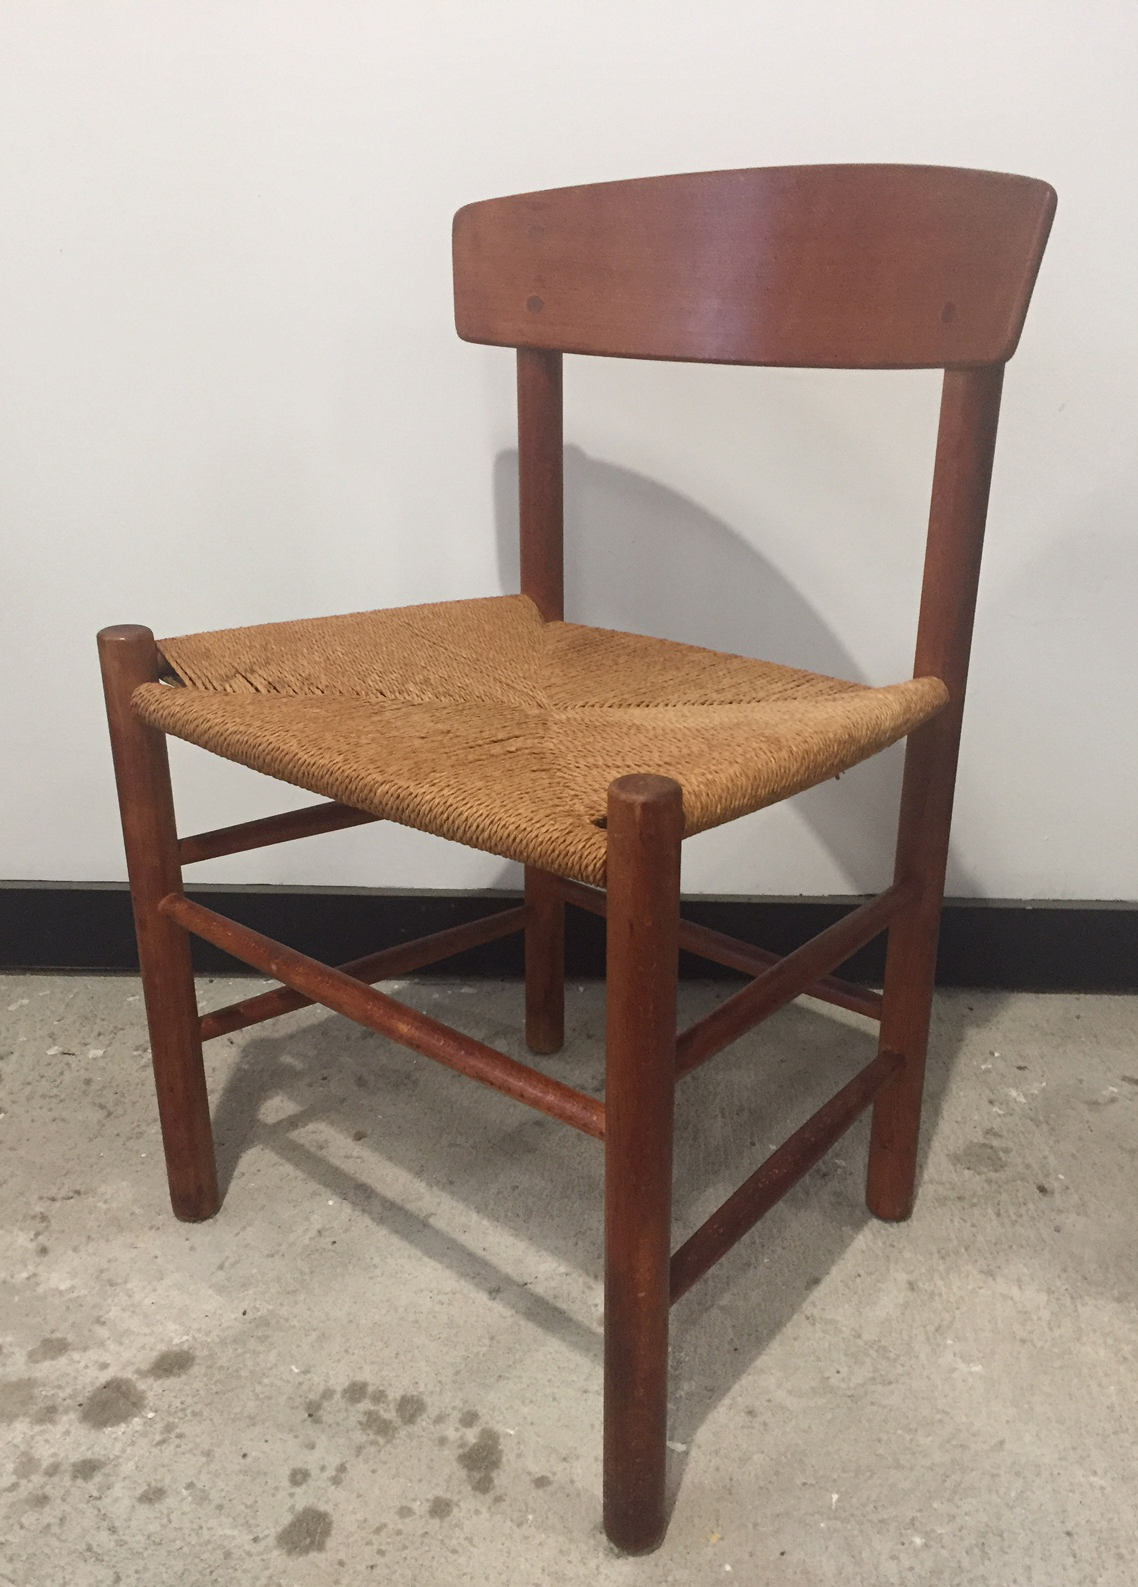 DANISH BEECH WOOD DINING CHAIR BY BORGE MOGENSEN, MODEL J39